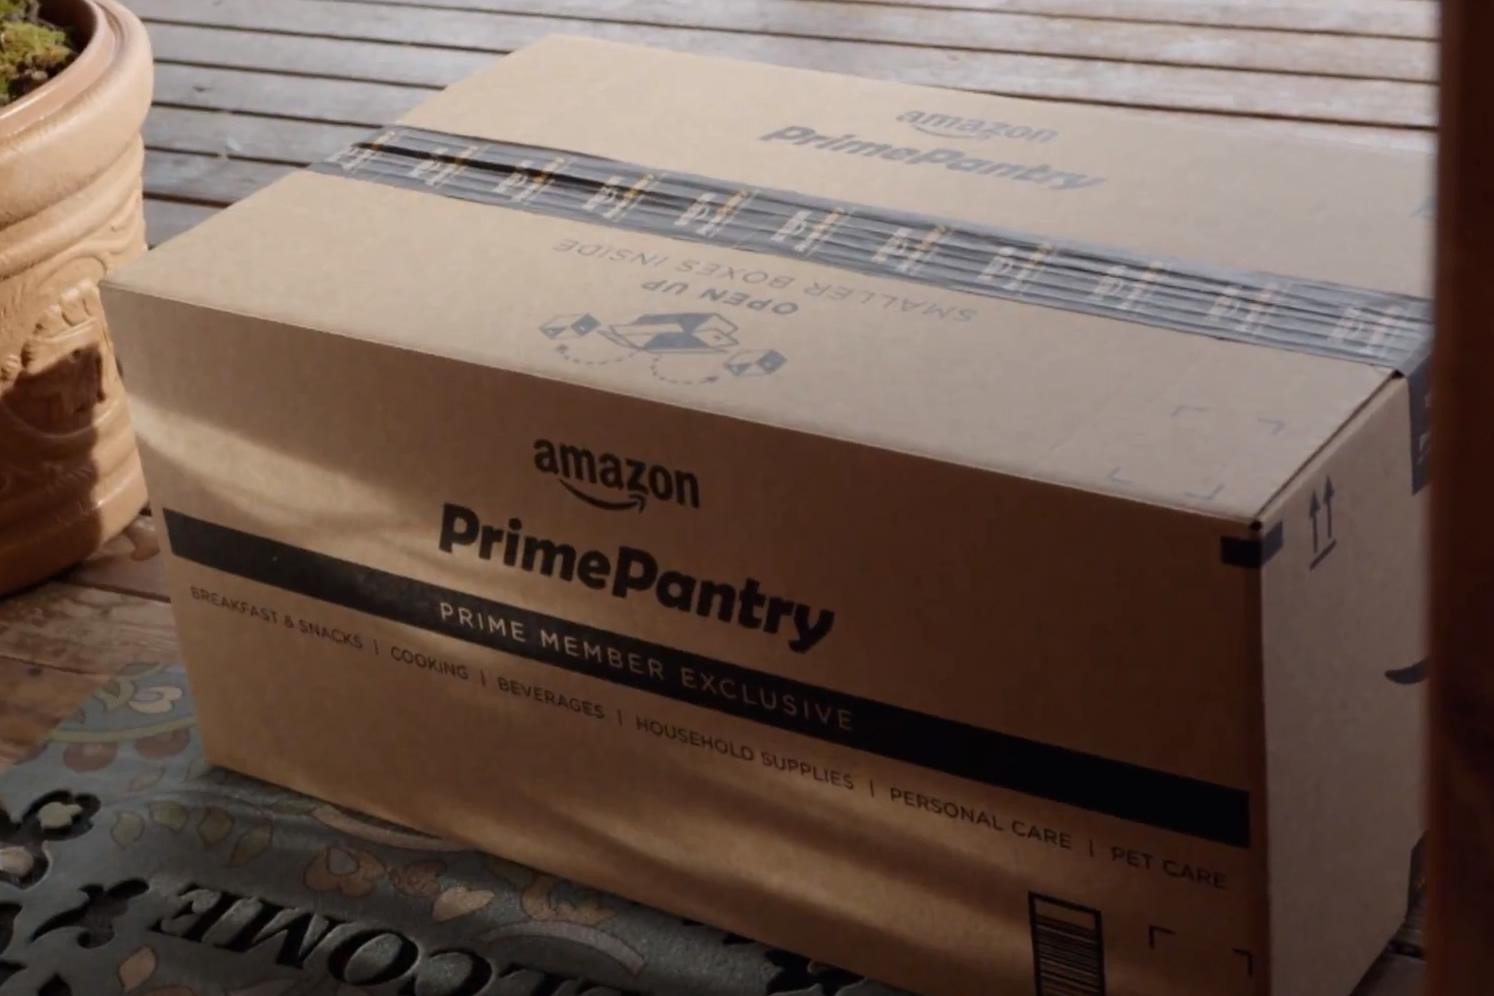 Best ideas about Prime Pantry Box . Save or Pin Amazon takes on the grocery store with Prime Pantry Now.